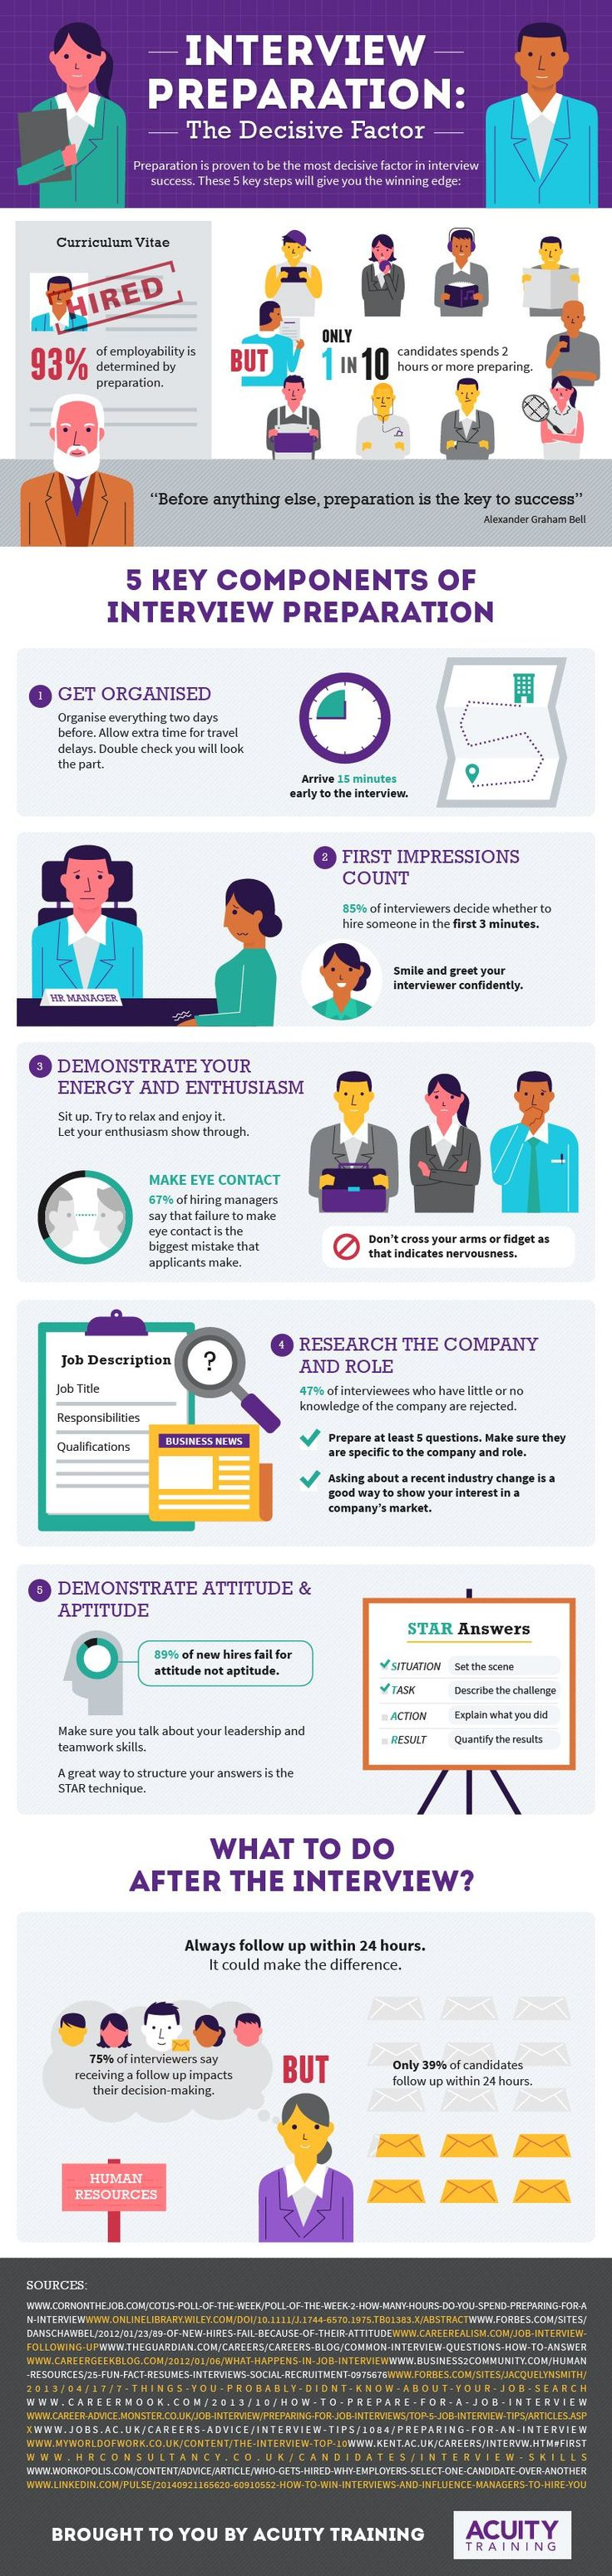 The Interview Preparation Infographic explains the key steps of interview preparation that will help you go into your next interview with the winning edge.